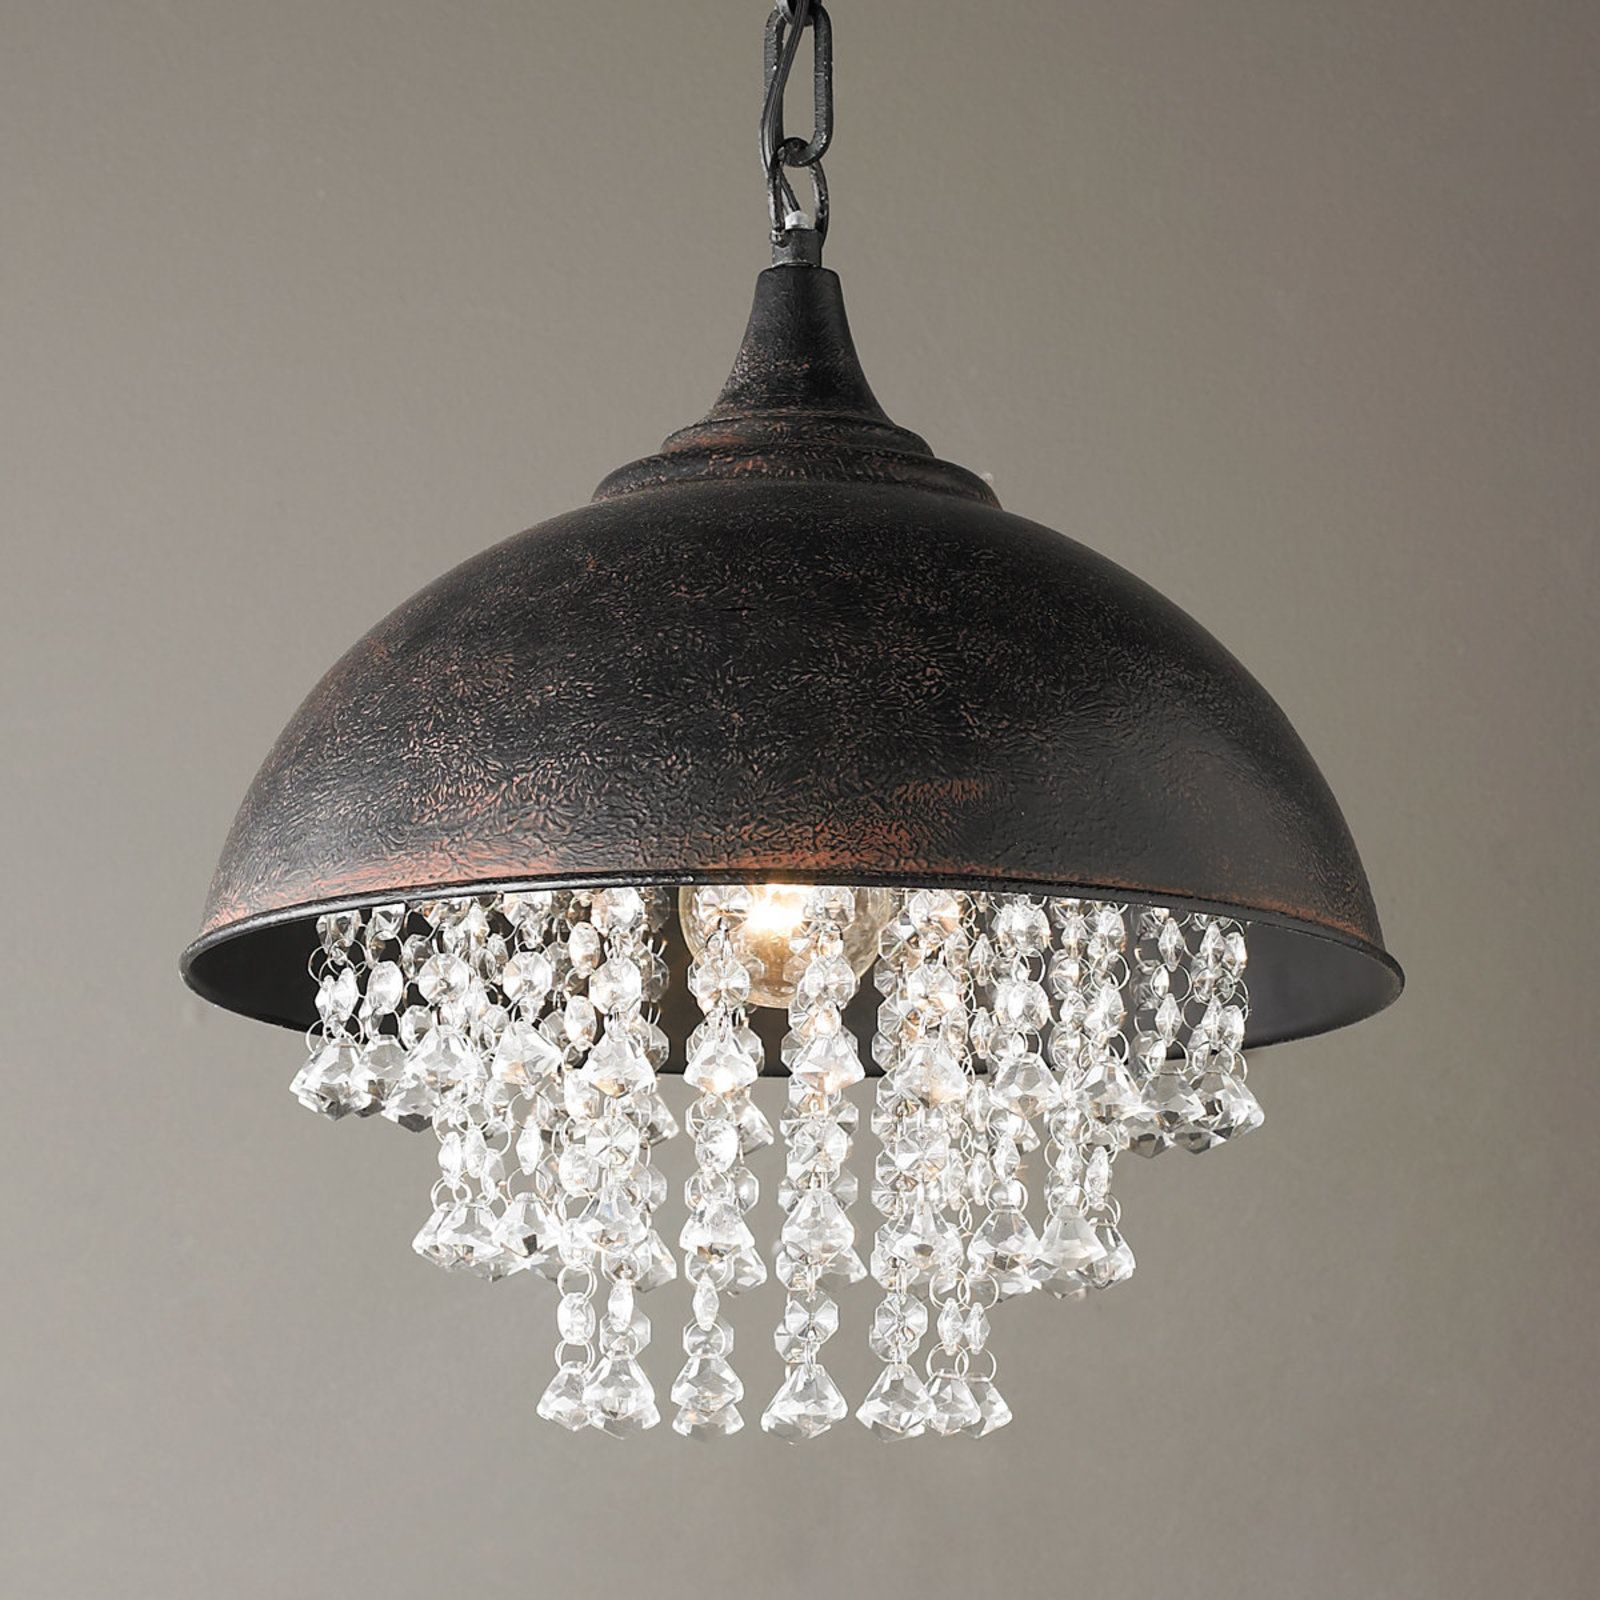 Metal Dome Pendant With Crystals | Elissa's Kitchen with Monadnock 1-Light Single Dome Pendants (Image 17 of 30)